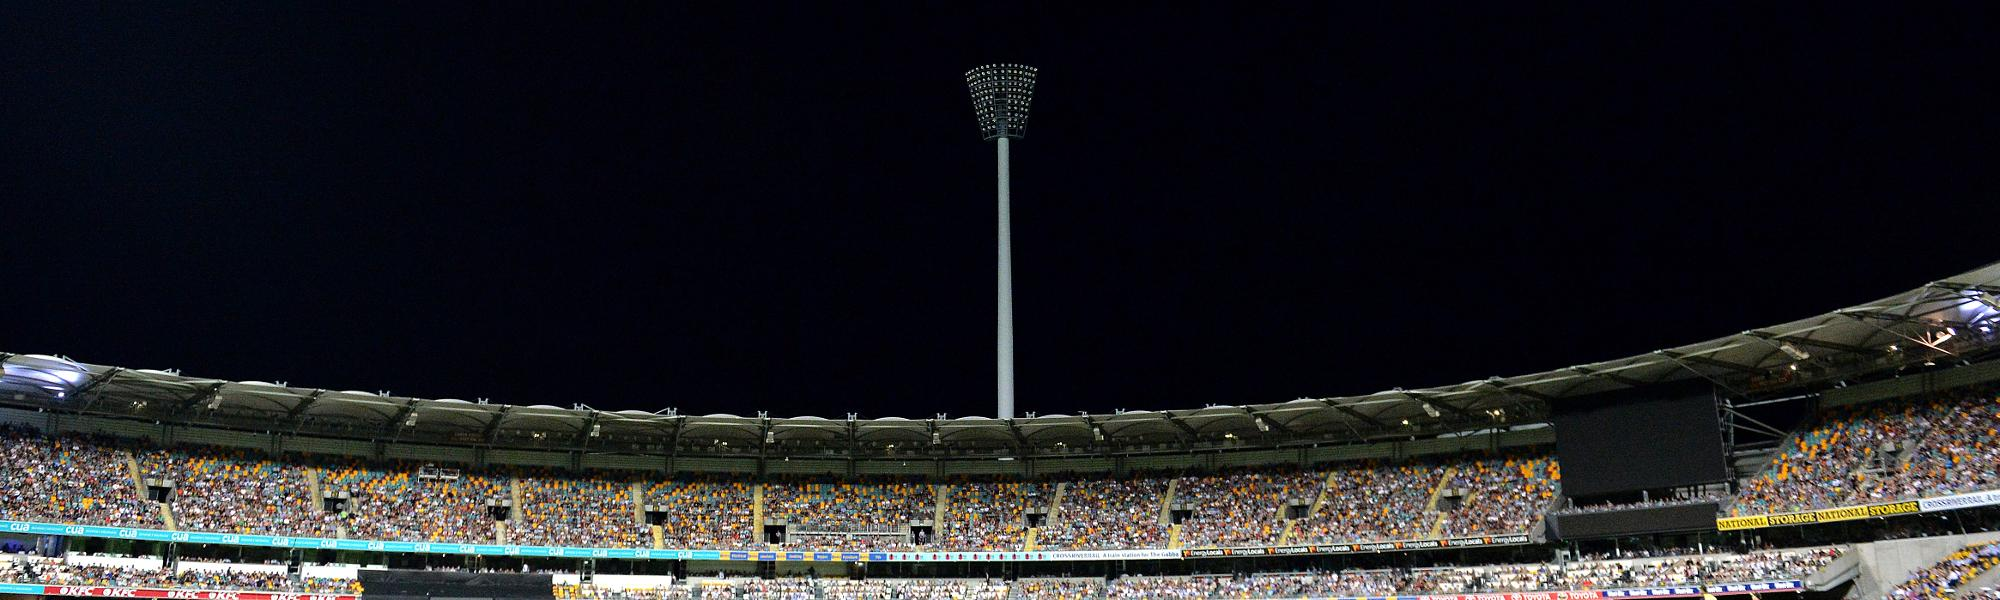 CA offer free Test tickets to BBL fans affected by power outage